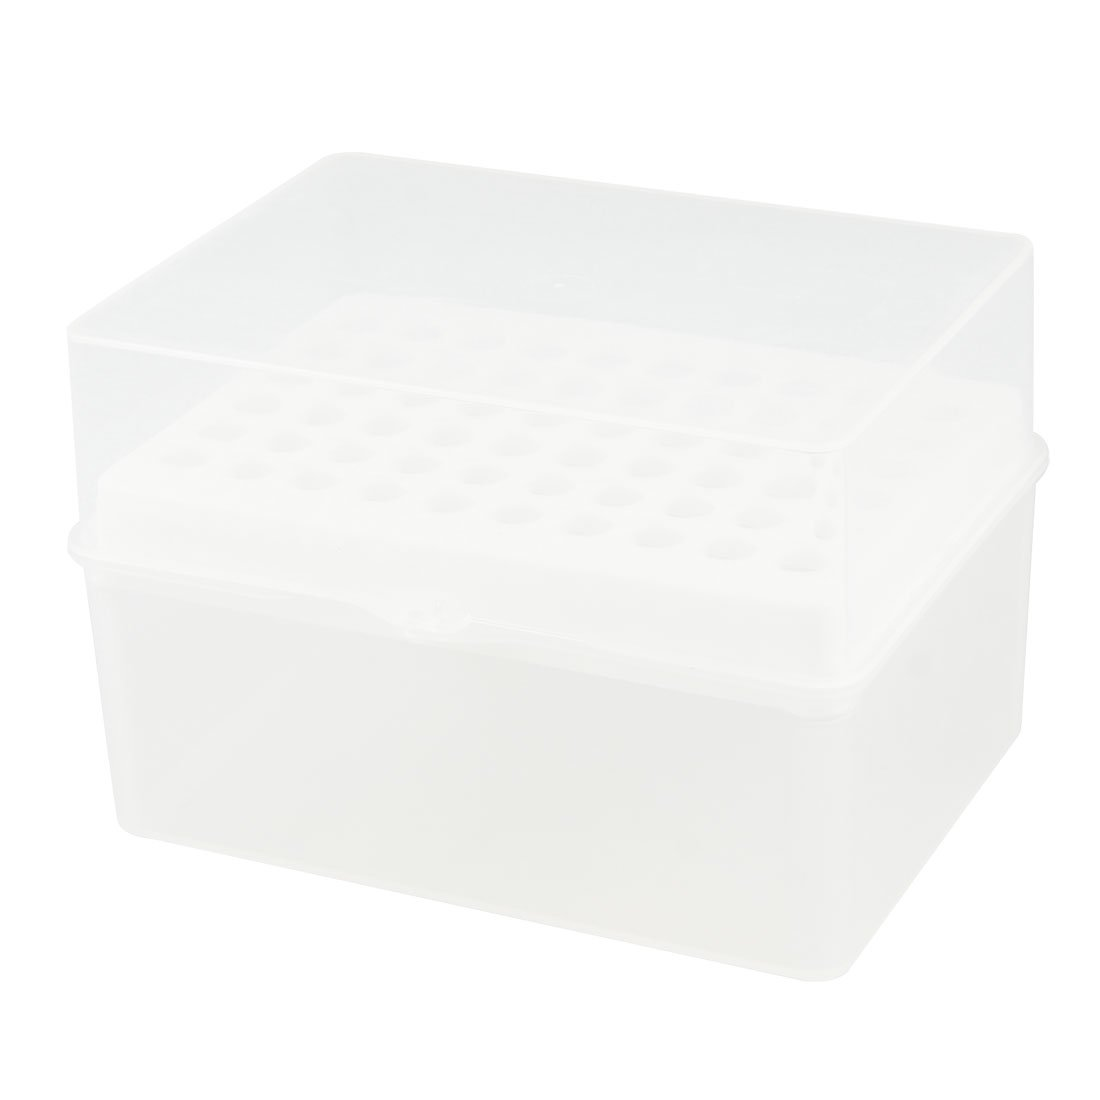 Rectangular 60 Positions Laboratory 100UL Pipette Pipettor Tip Holder Box uxcell a12102600ux0335